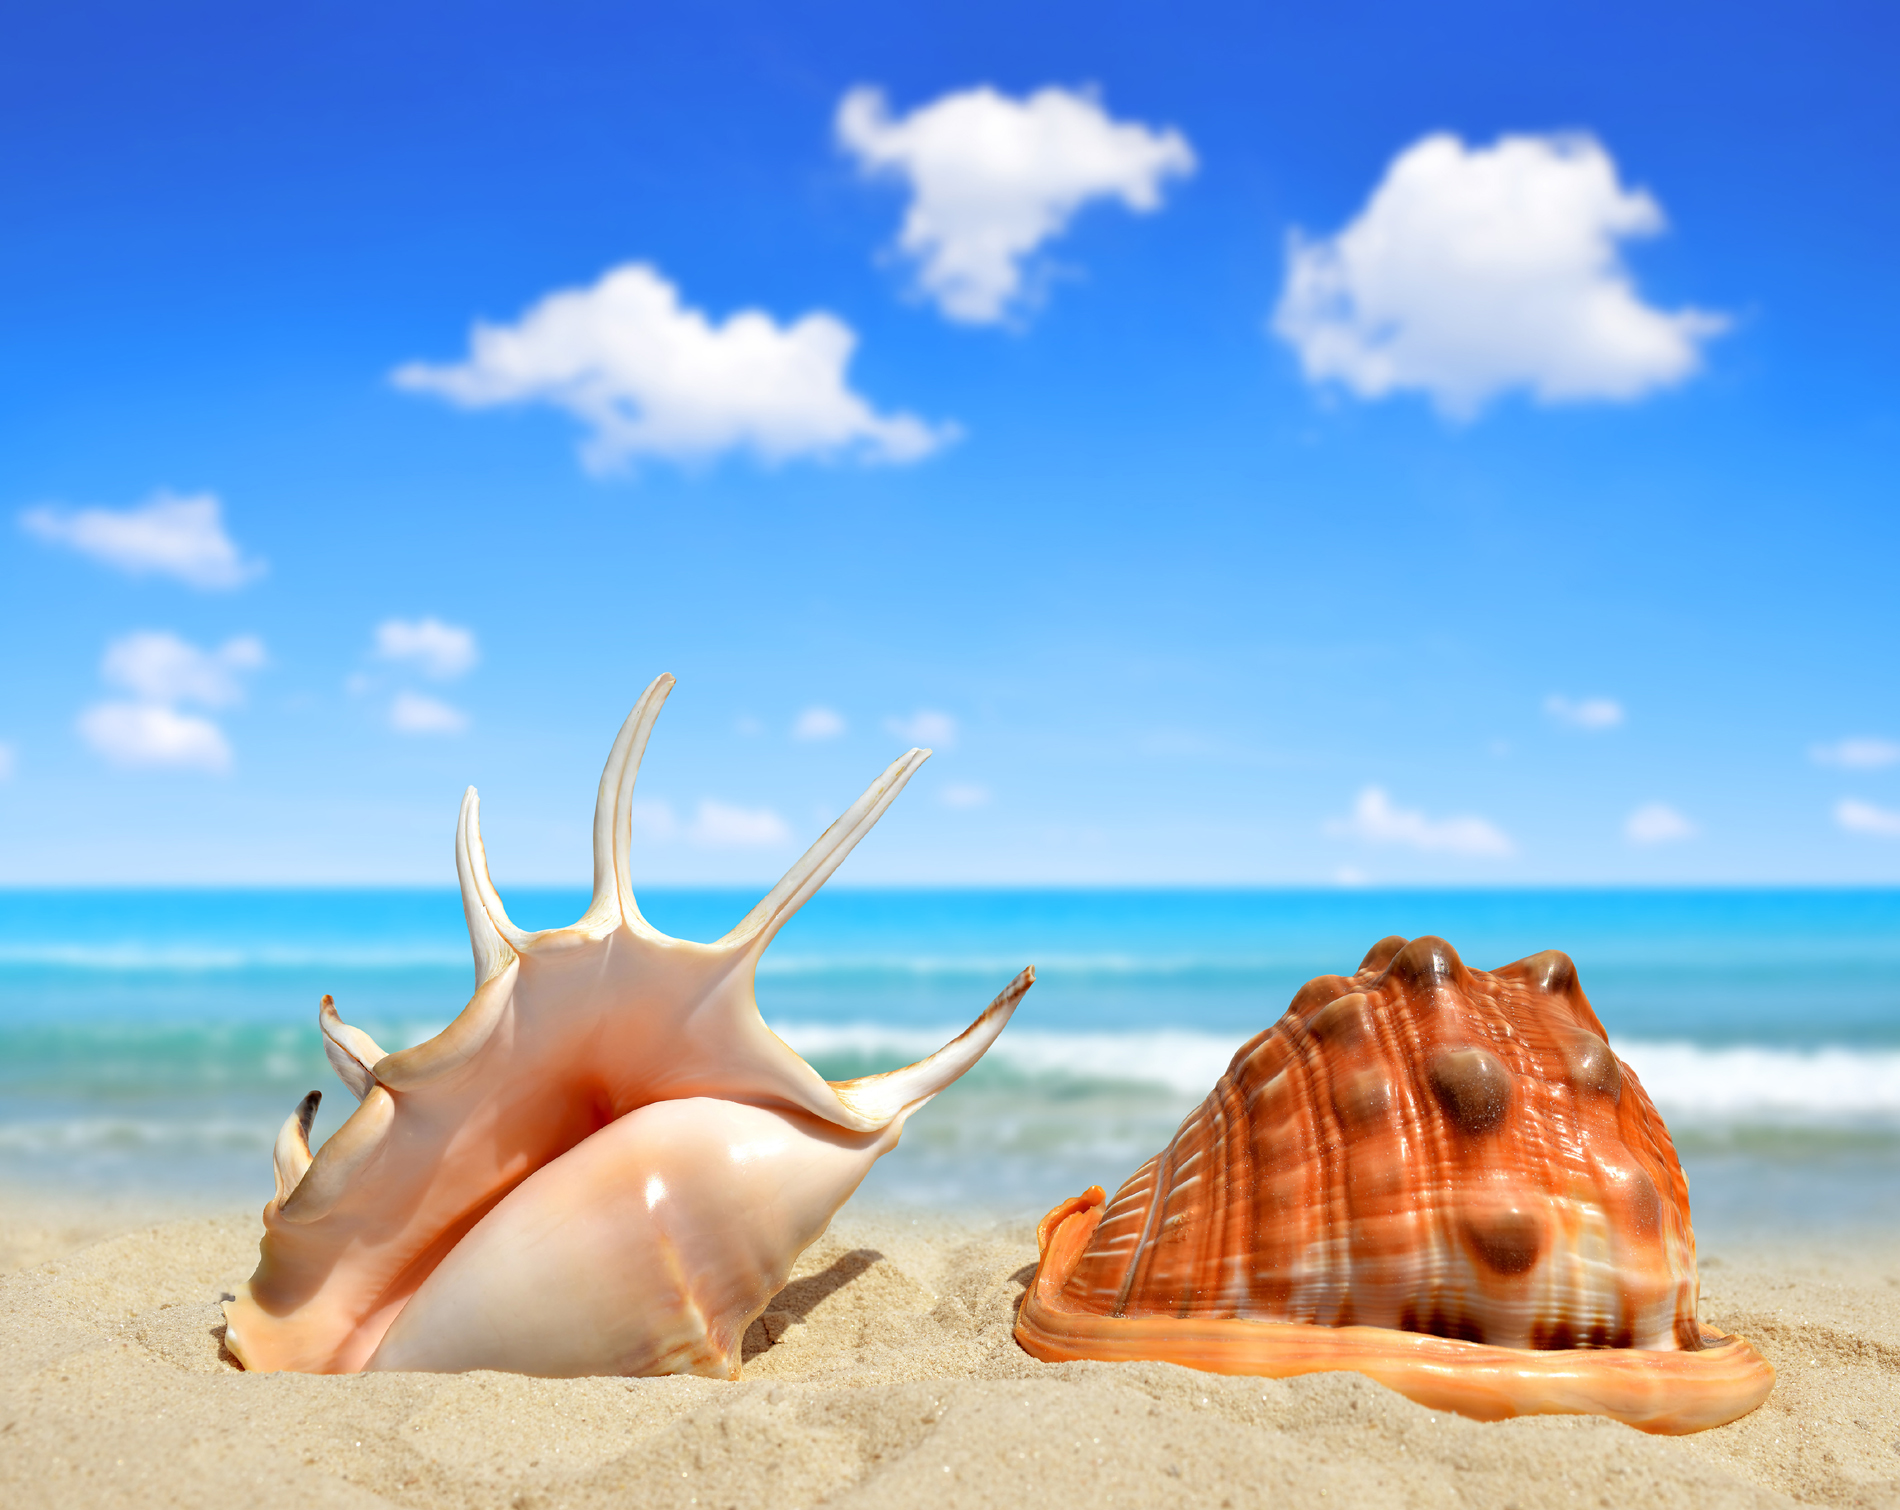 Blue sky and white clouds and the shells on the beach 53348